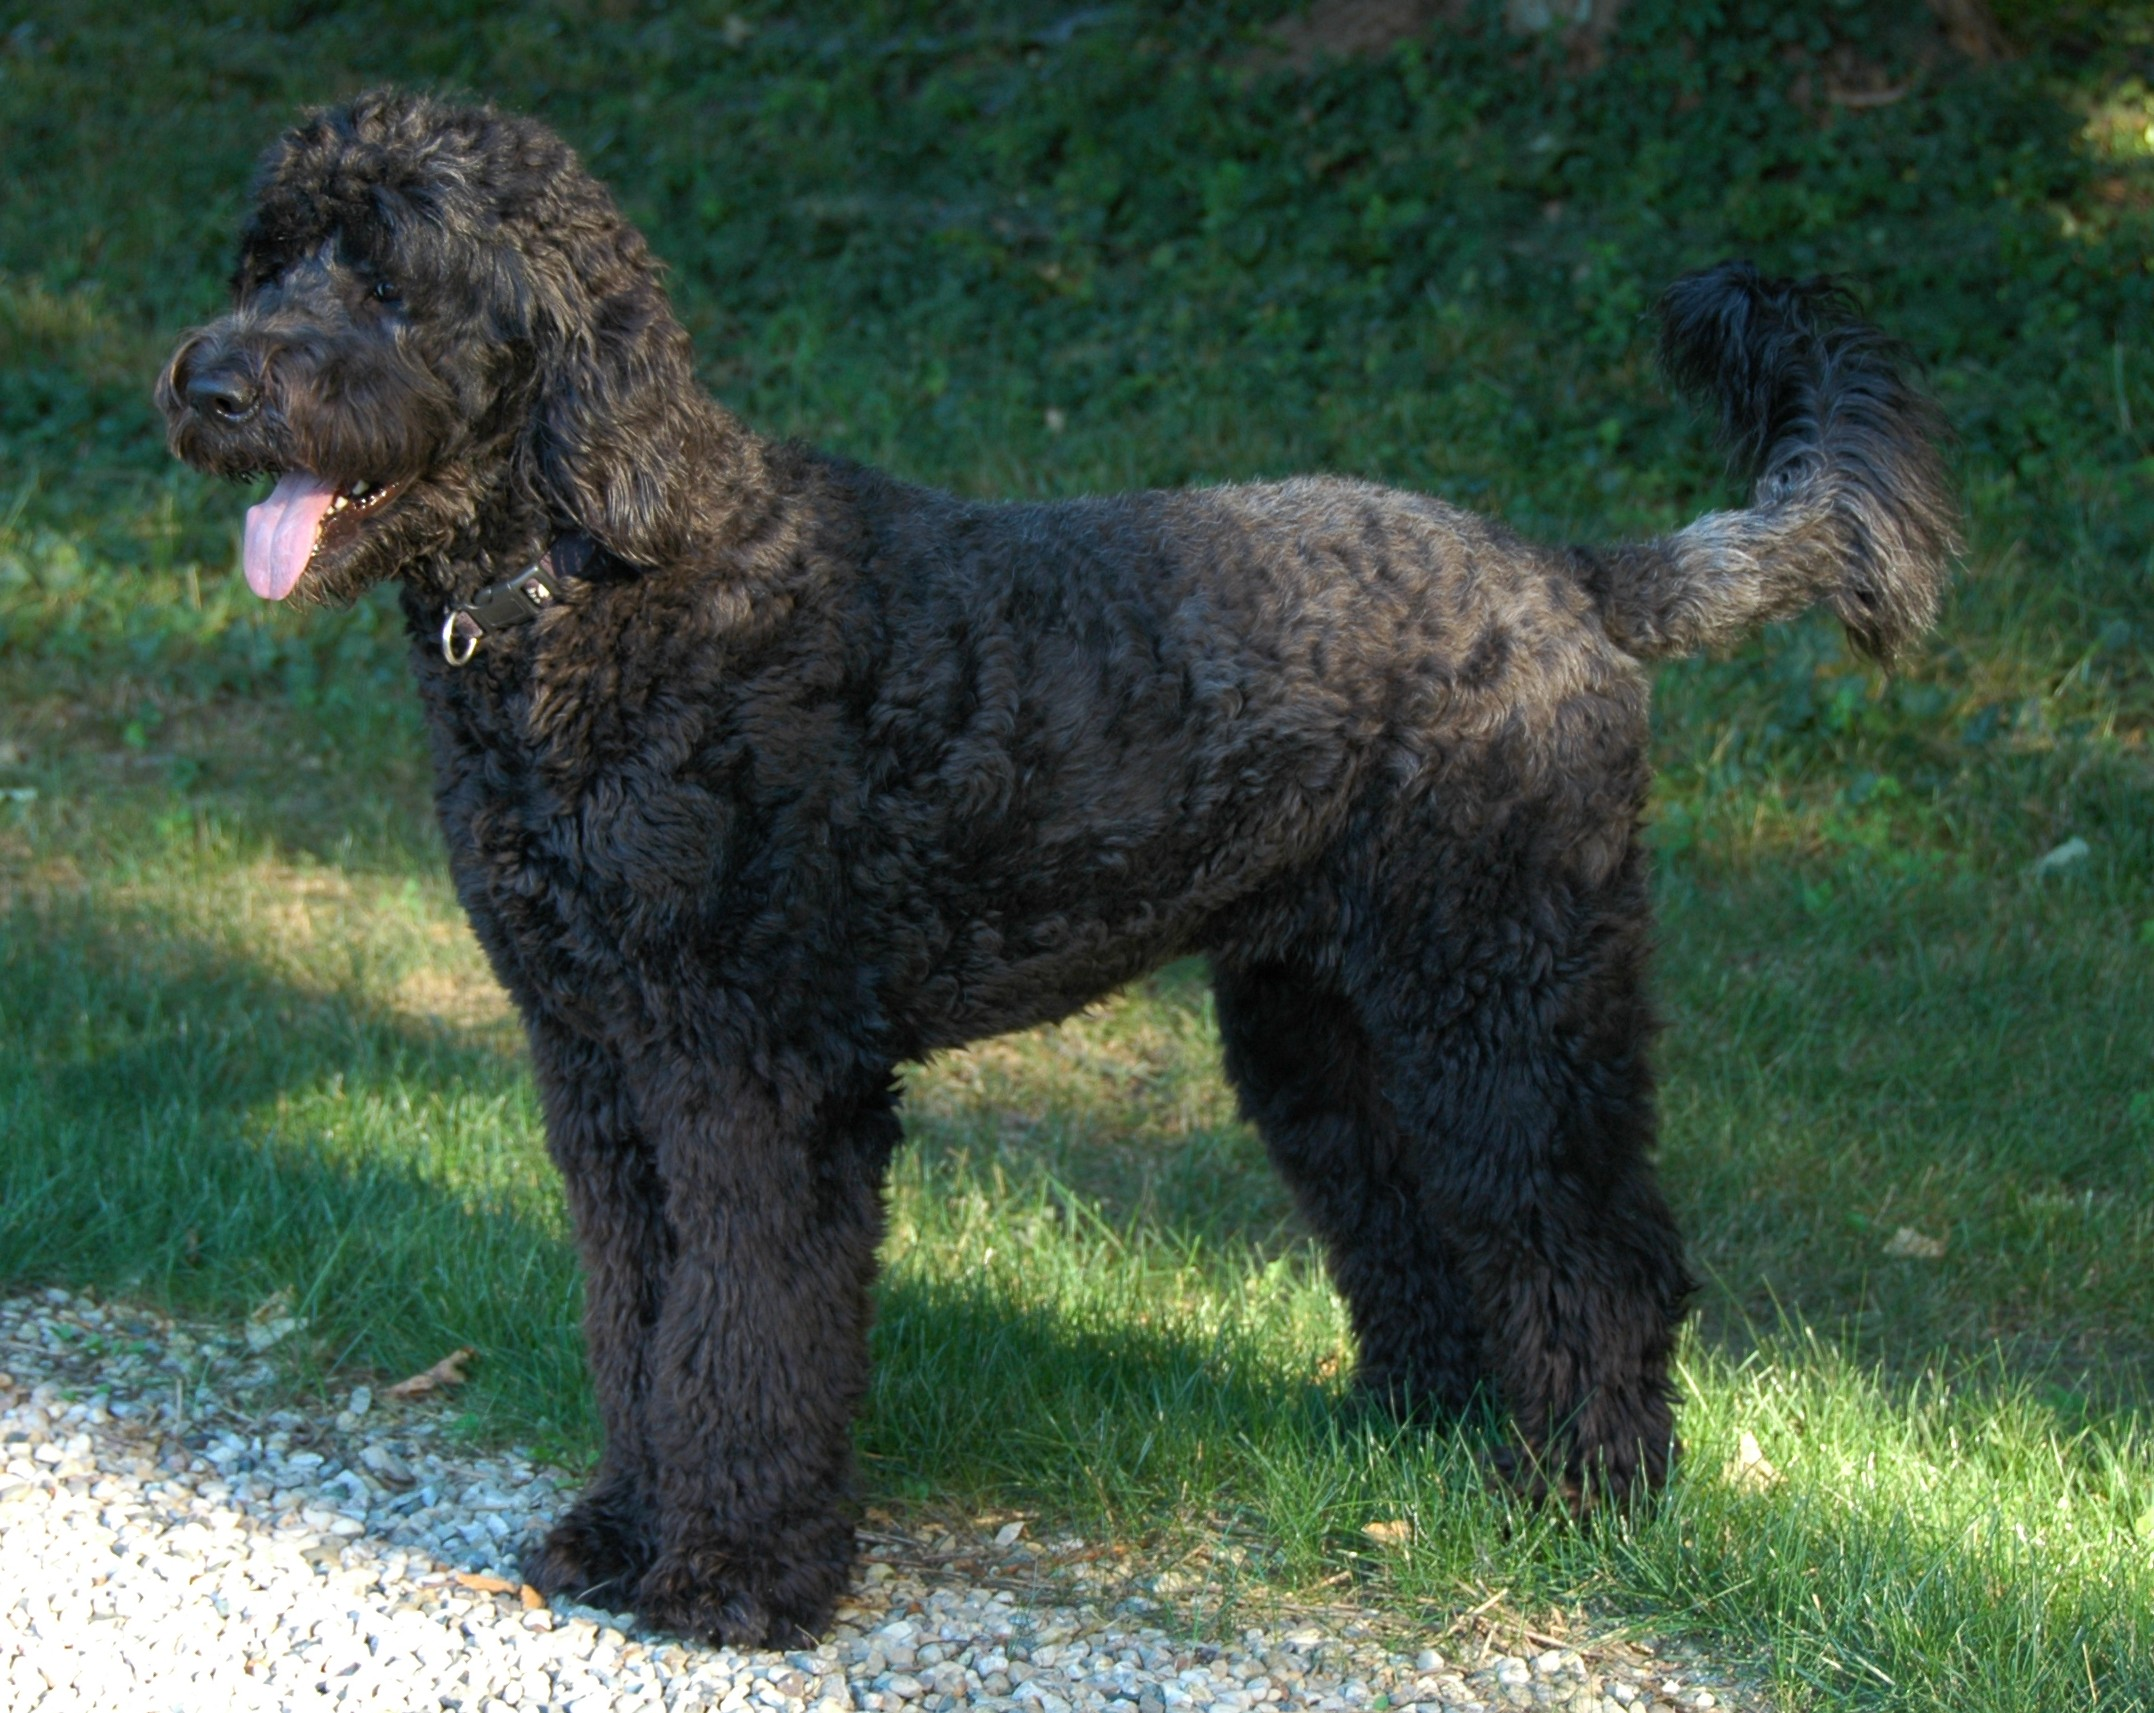 Thread: What is the deal with bernedoodles?